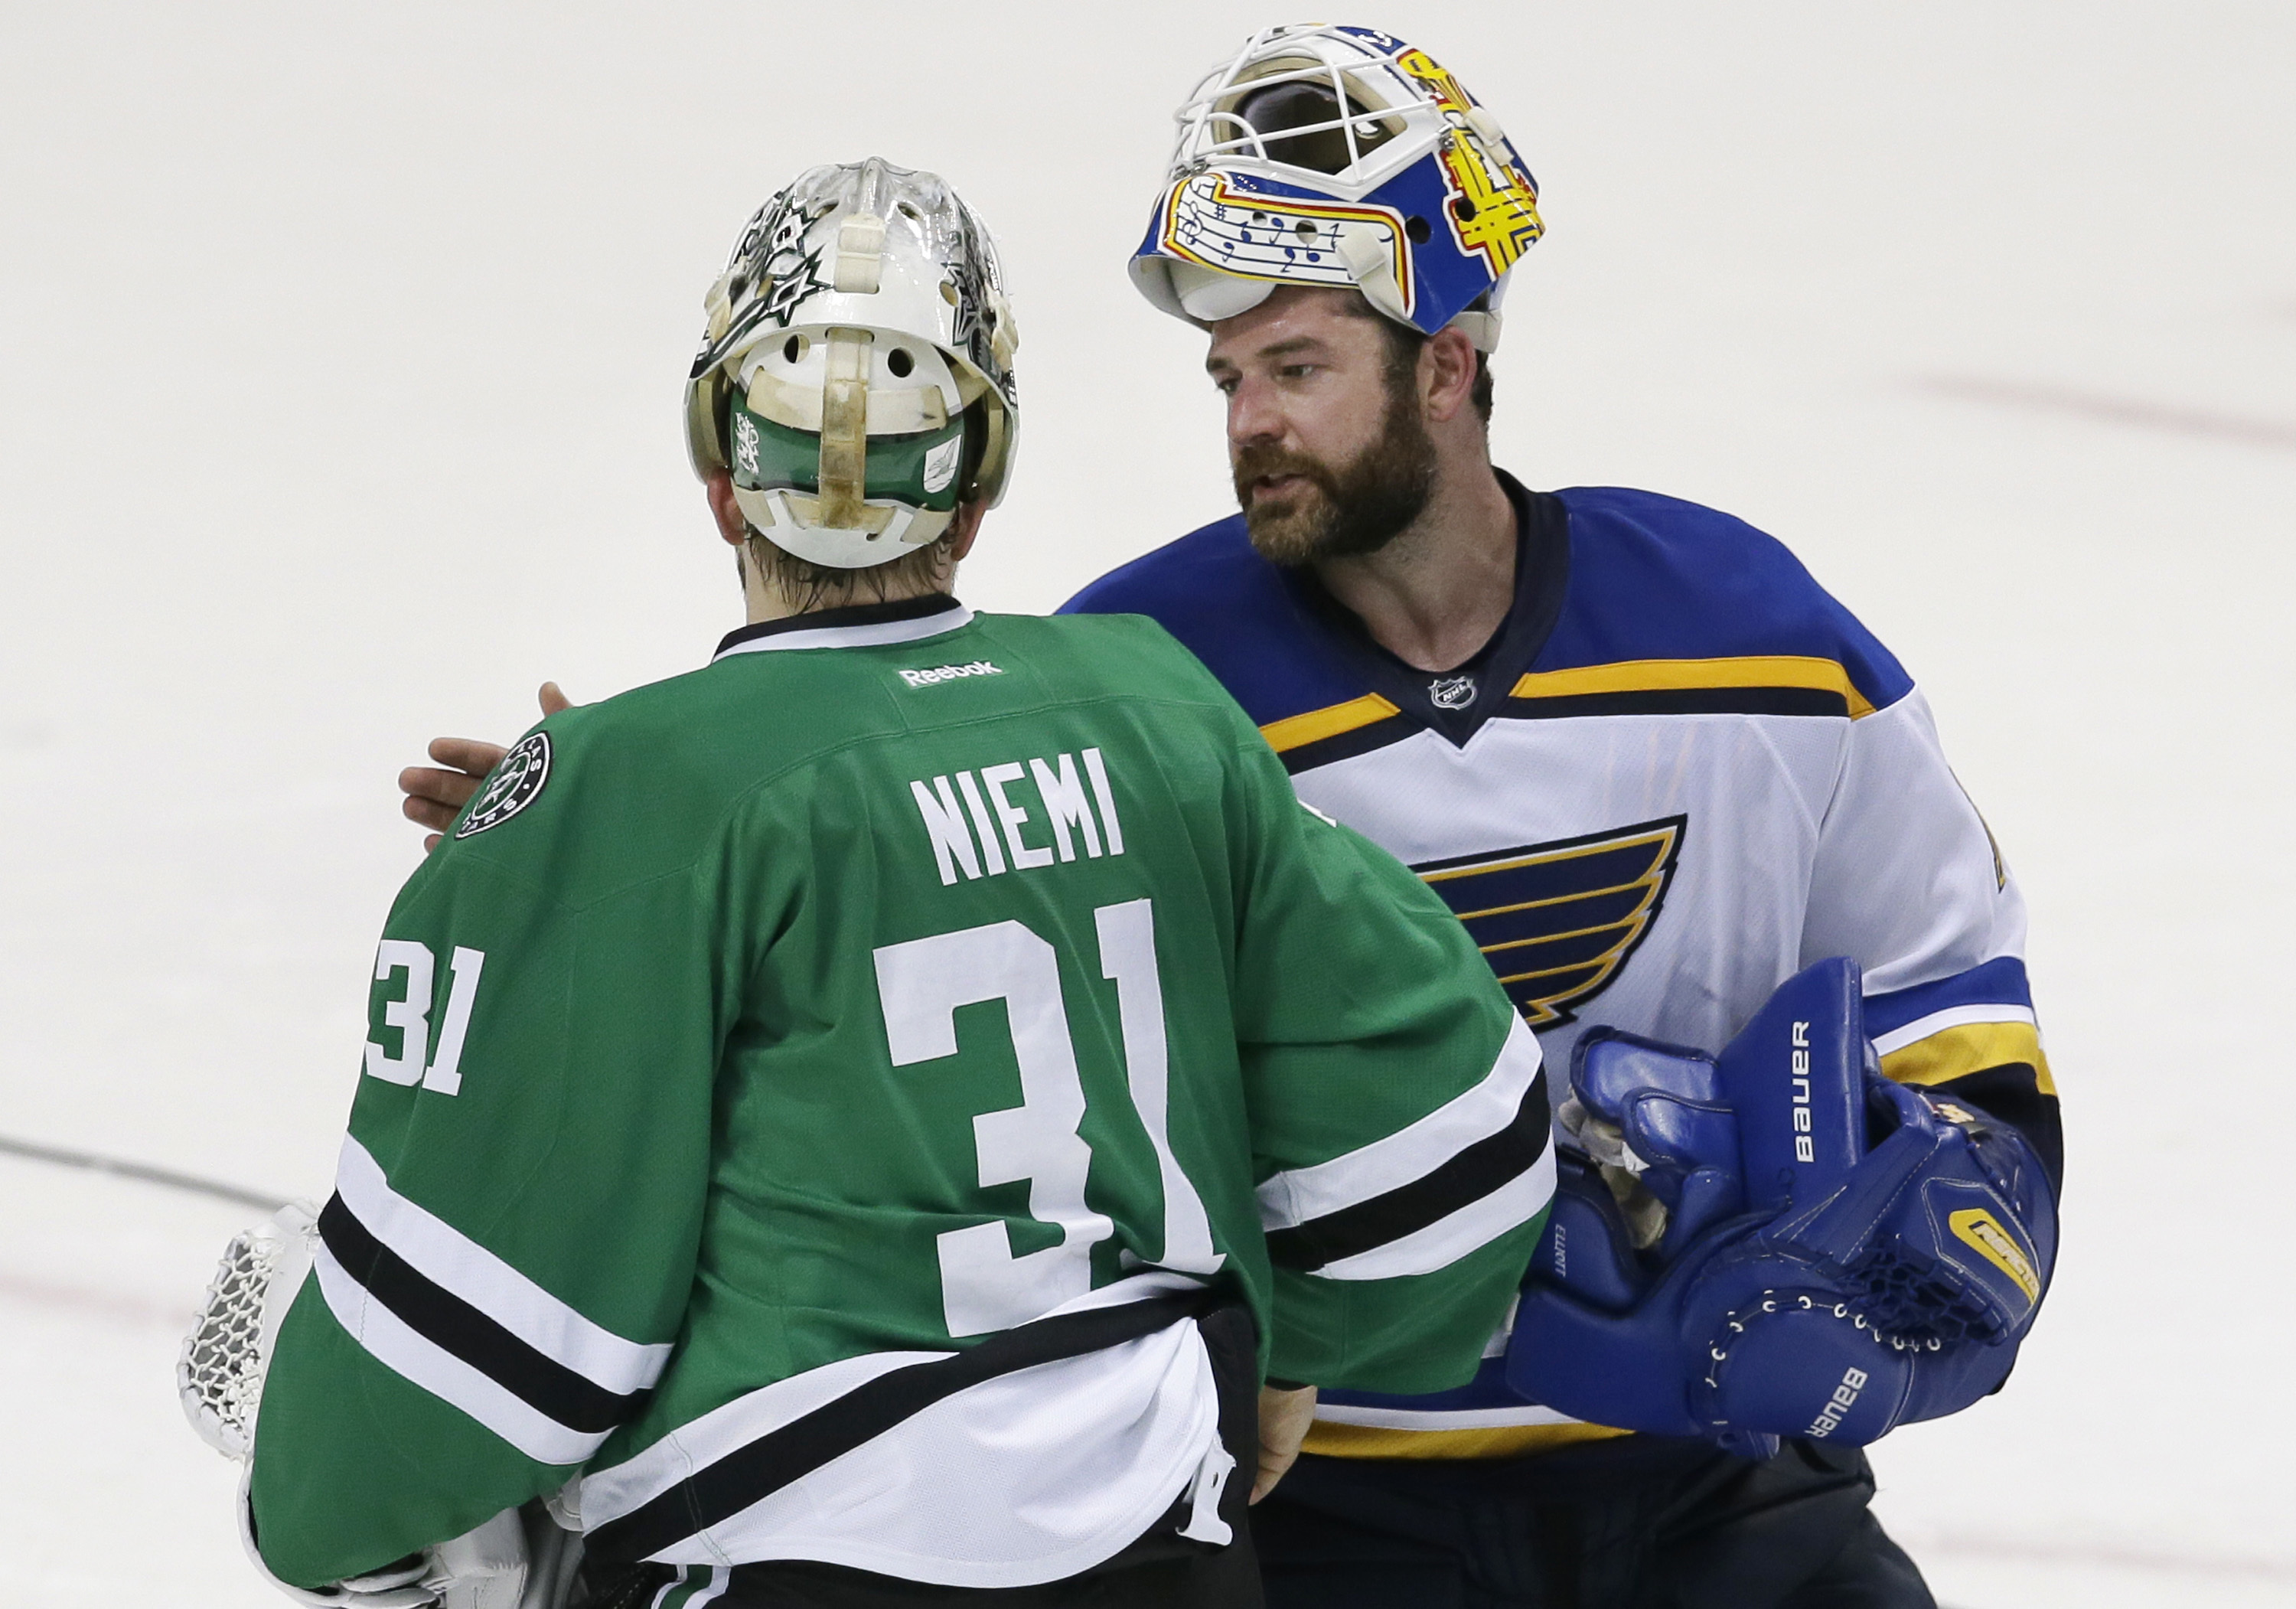 St. Louis Blues goalie Brian Elliott (1) and Dallas Stars goalie Antti Niemi (31) greet each other after Game 7 of the NHL hockey Stanley Cup Western Conference semifinals Wednesday, May 11, 2016, in Dallas. The Blues won 6-1. (AP Photo/LM Otero)